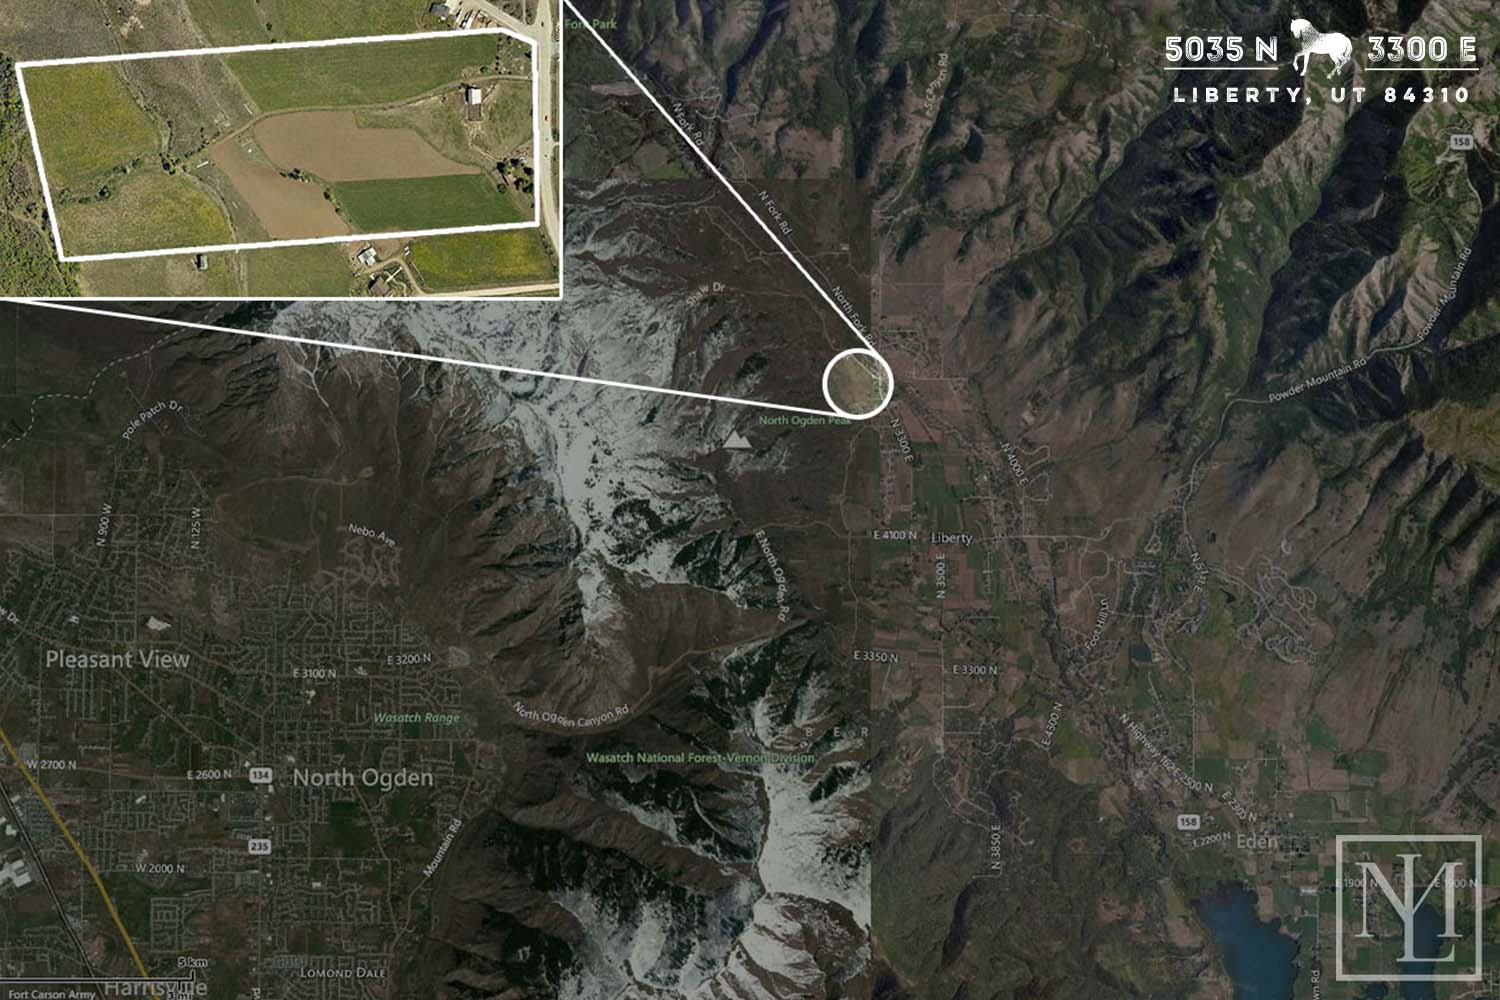 Ogden Valley Land Location